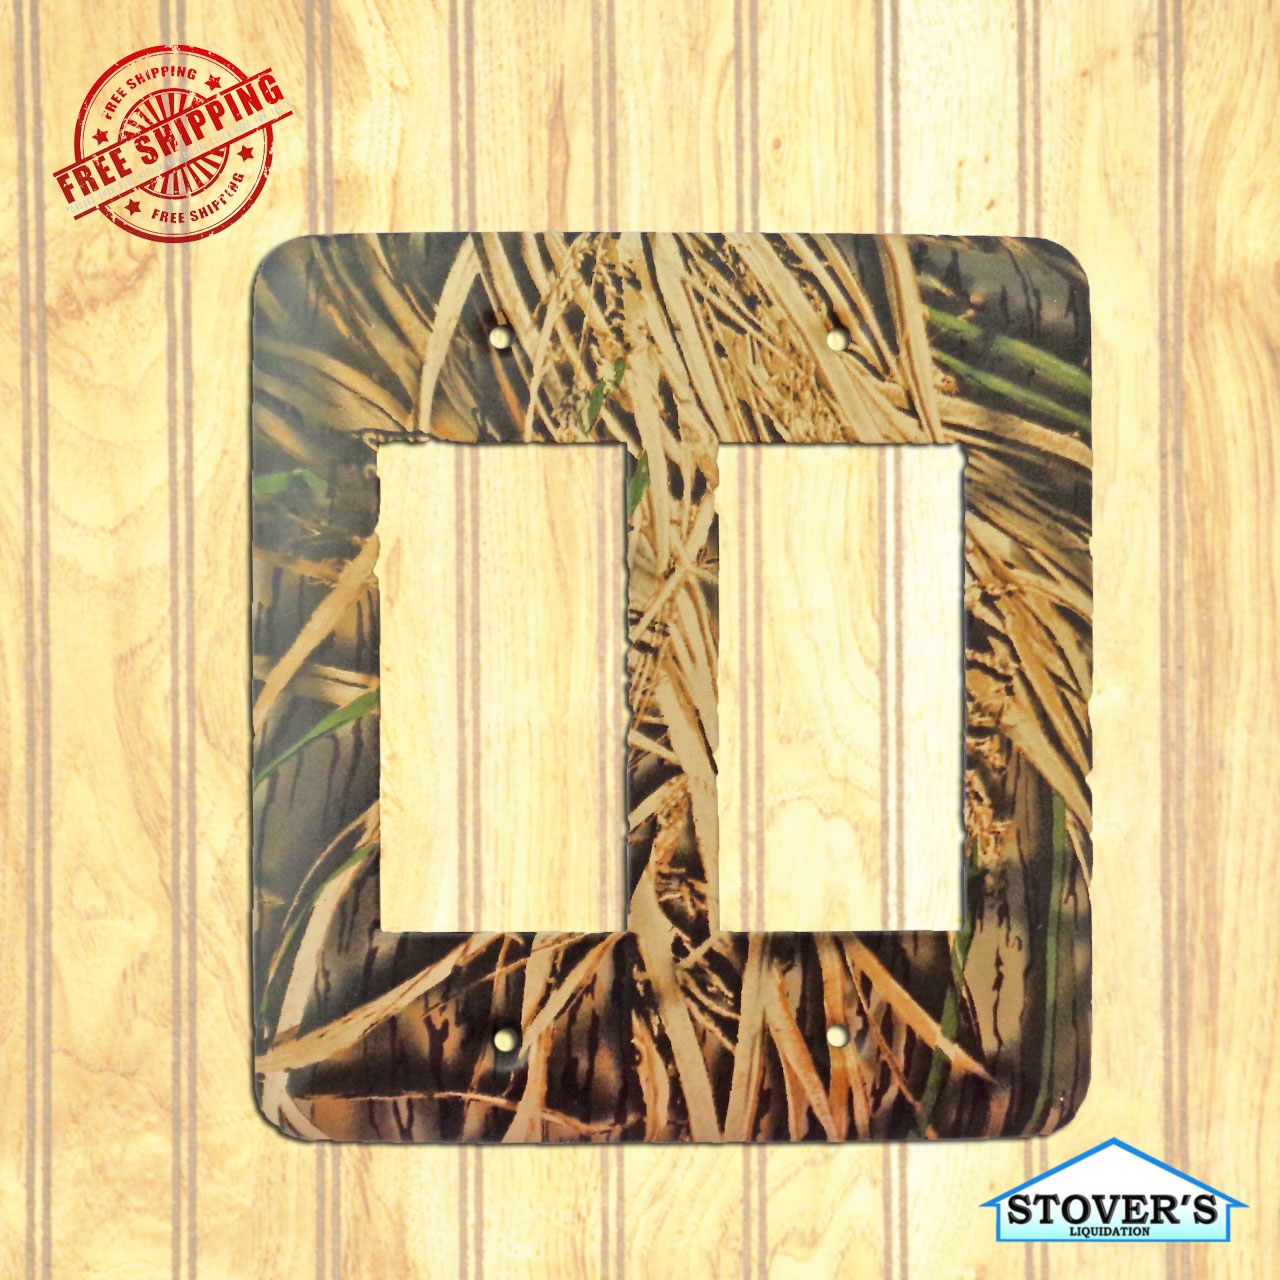 63152-double-rocker-light-switch-plate-camo-mossy-oak-shadow-grass-stovers-liquidation.jpg